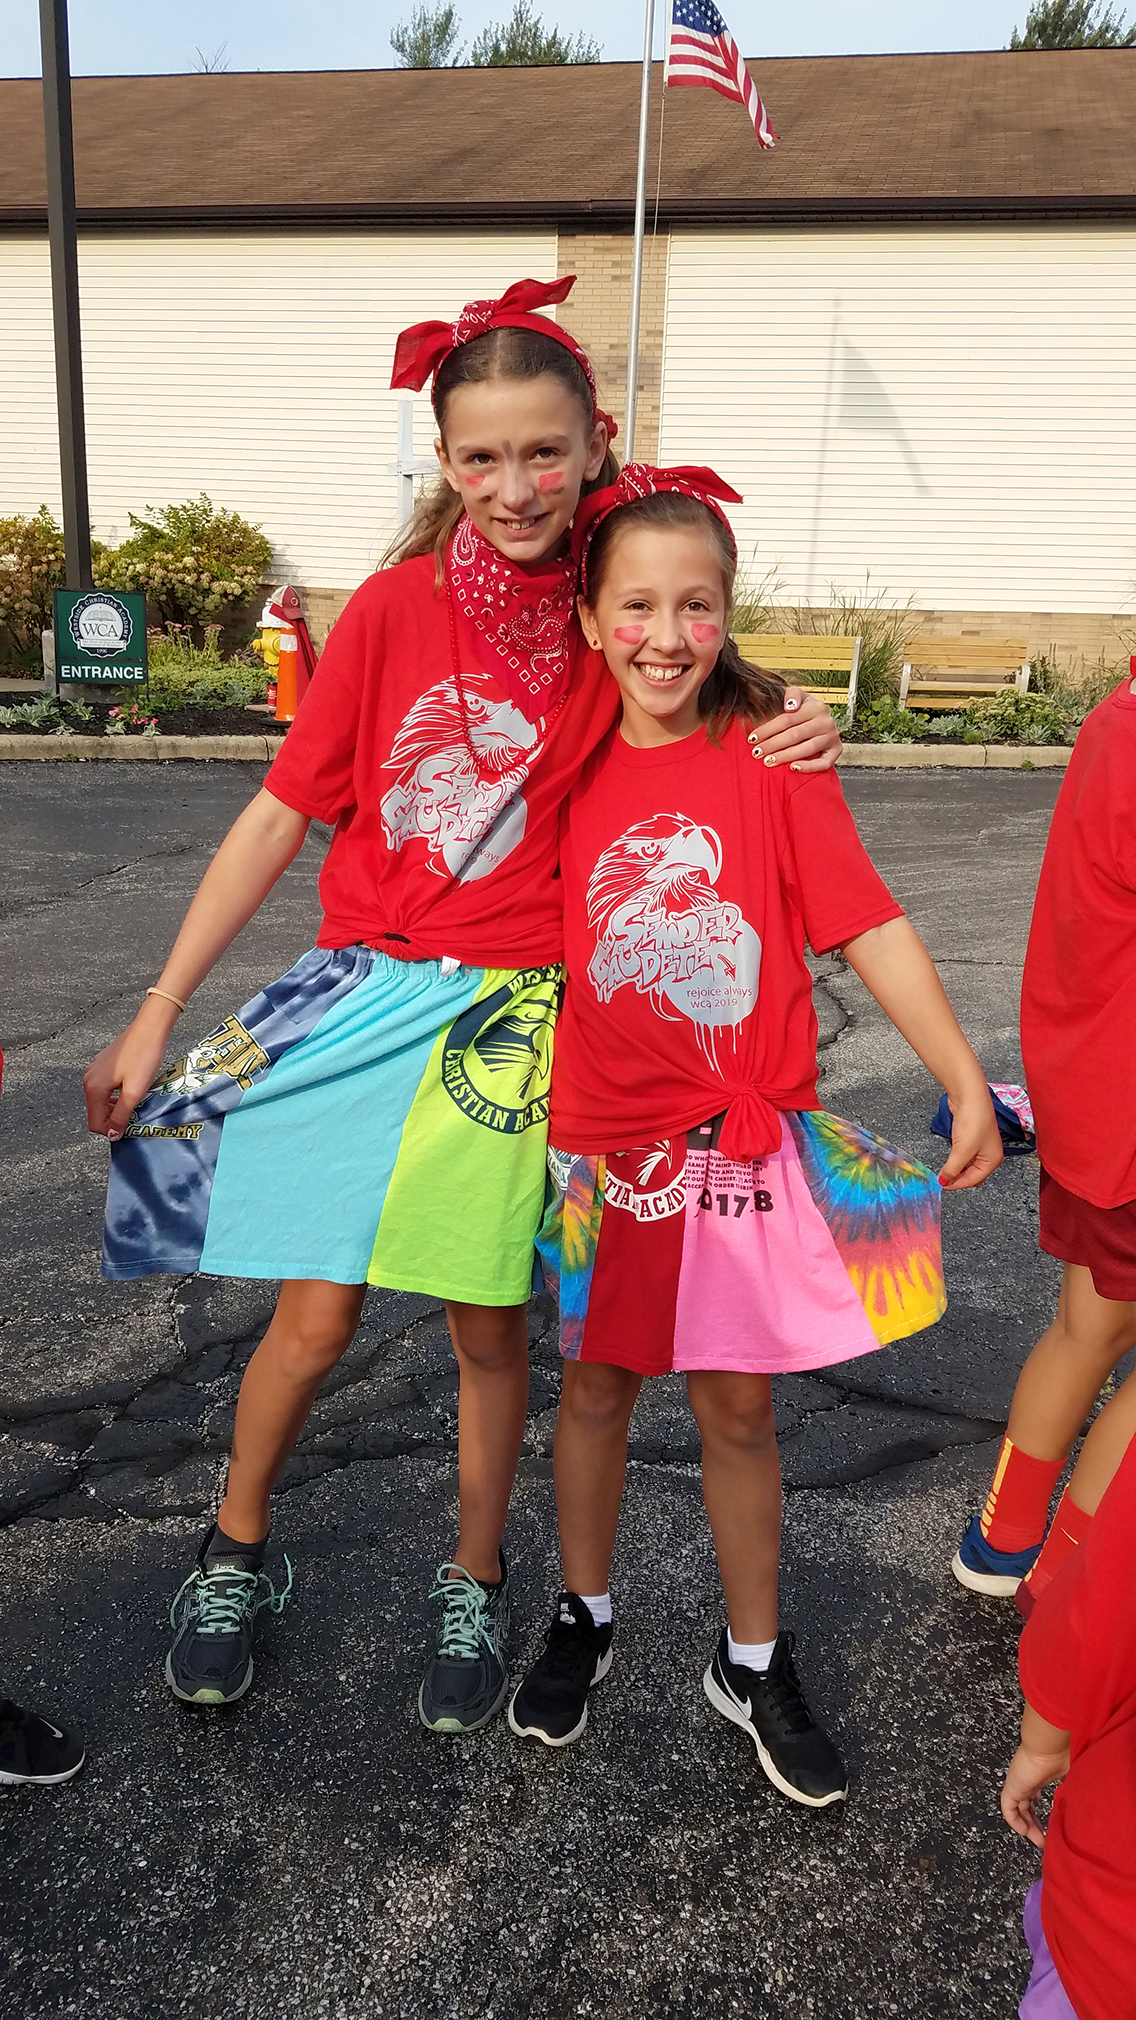 Field Day - Check out their Skirts!